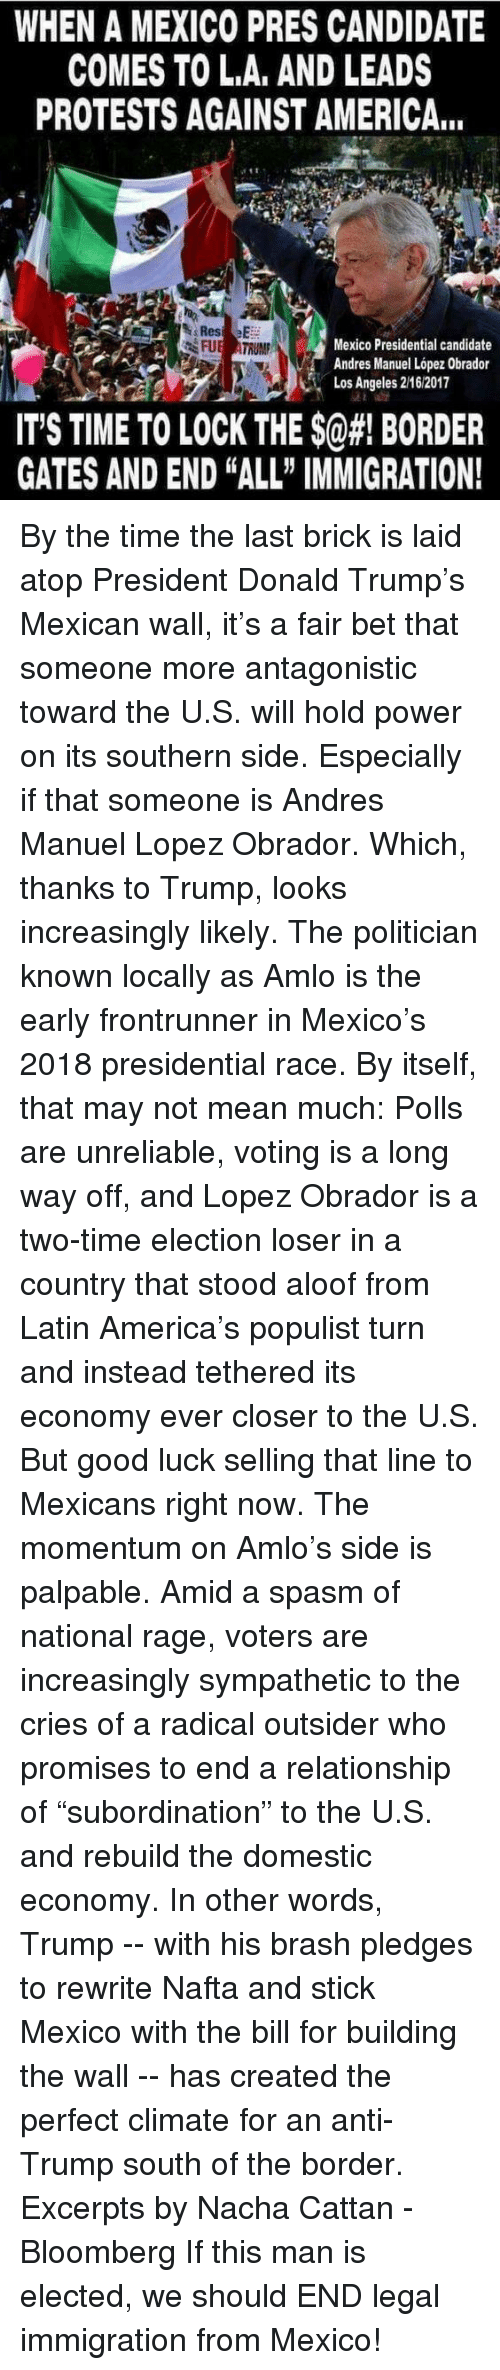 """Memes, Politicians, and 🤖: WHEN A MEXICO PRES CANDIDATE  COMES TO LA, AND LEADS  PROTESTS AGAINST AMERICANE  Mexico Presidential candidate  Andres Manuel Lopez Obrador  Los Angeles 216 2017  IT'S TIME TO LOCK THE$@#! BORDER  GATES AND END ALL"""" IMMIGRATION! By the time the last brick is laid atop President Donald Trump's Mexican wall, it's a fair bet that someone more antagonistic toward the U.S. will hold power on its southern side.  Especially if that someone is Andres Manuel Lopez Obrador. Which, thanks to Trump, looks increasingly likely.  The politician known locally as Amlo is the early frontrunner in Mexico's 2018 presidential race. By itself, that may not mean much: Polls are unreliable, voting is a long way off, and Lopez Obrador is a two-time election loser in a country that stood aloof from Latin America's populist turn and instead tethered its economy ever closer to the U.S.  But good luck selling that line to Mexicans right now. The momentum on Amlo's side is palpable. Amid a spasm of national rage, voters are increasingly sympathetic to the cries of a radical outsider who promises to end a relationship of """"subordination"""" to the U.S. and rebuild the domestic economy. In other words, Trump -- with his brash pledges to rewrite Nafta and stick Mexico with the bill for building the wall -- has created the perfect climate for an anti-Trump south of the border.  Excerpts by Nacha Cattan - Bloomberg  If this man is elected, we should END legal immigration from Mexico!"""